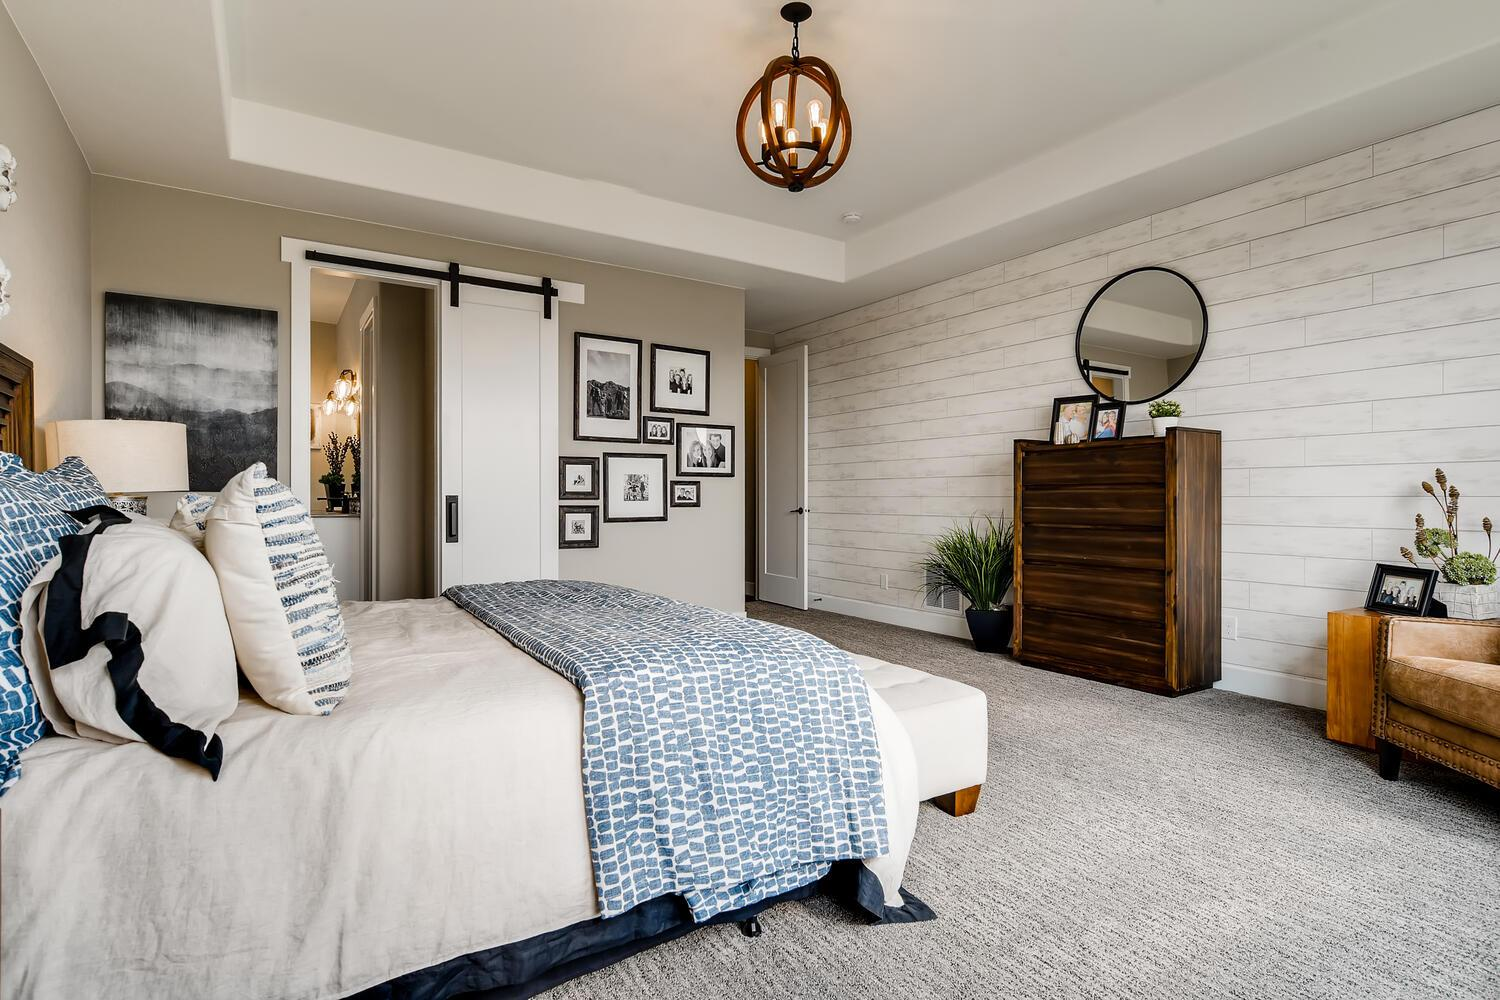 Bedroom featured in the Grandview By Classic Homes in Colorado Springs, CO